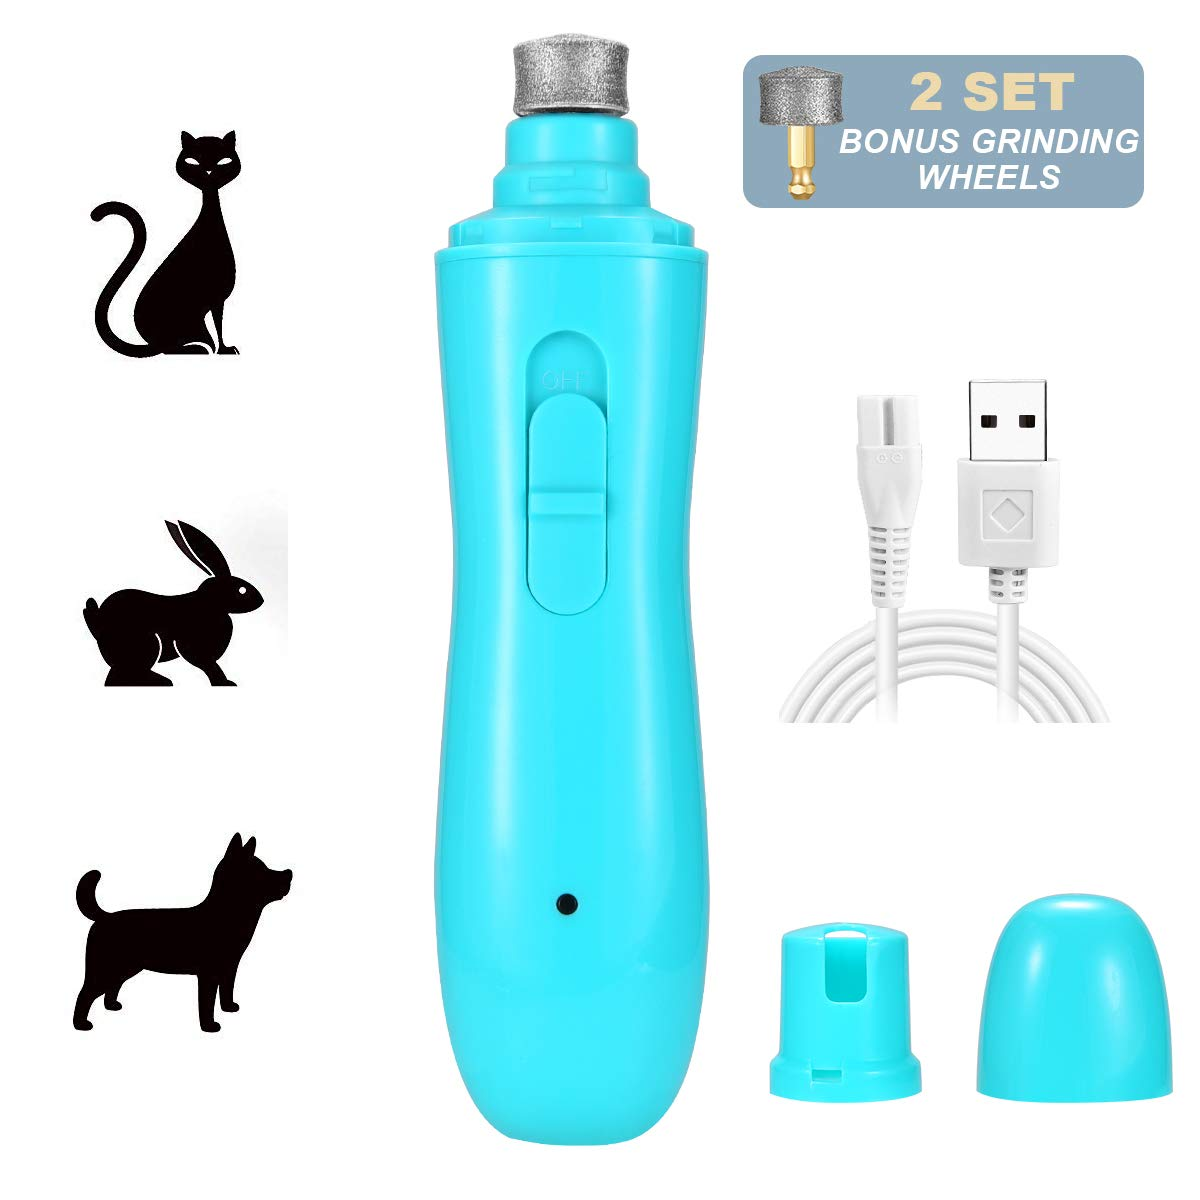 Waitley Pet Nail Grinder, [2019 Upgraded] 2 Speed Dog Nail Grinder Electric Paws Trimmer Rechargeable for Small Medium Dogs Cats - Gentle Painless Grooming, Trimming & Smoothing Kits